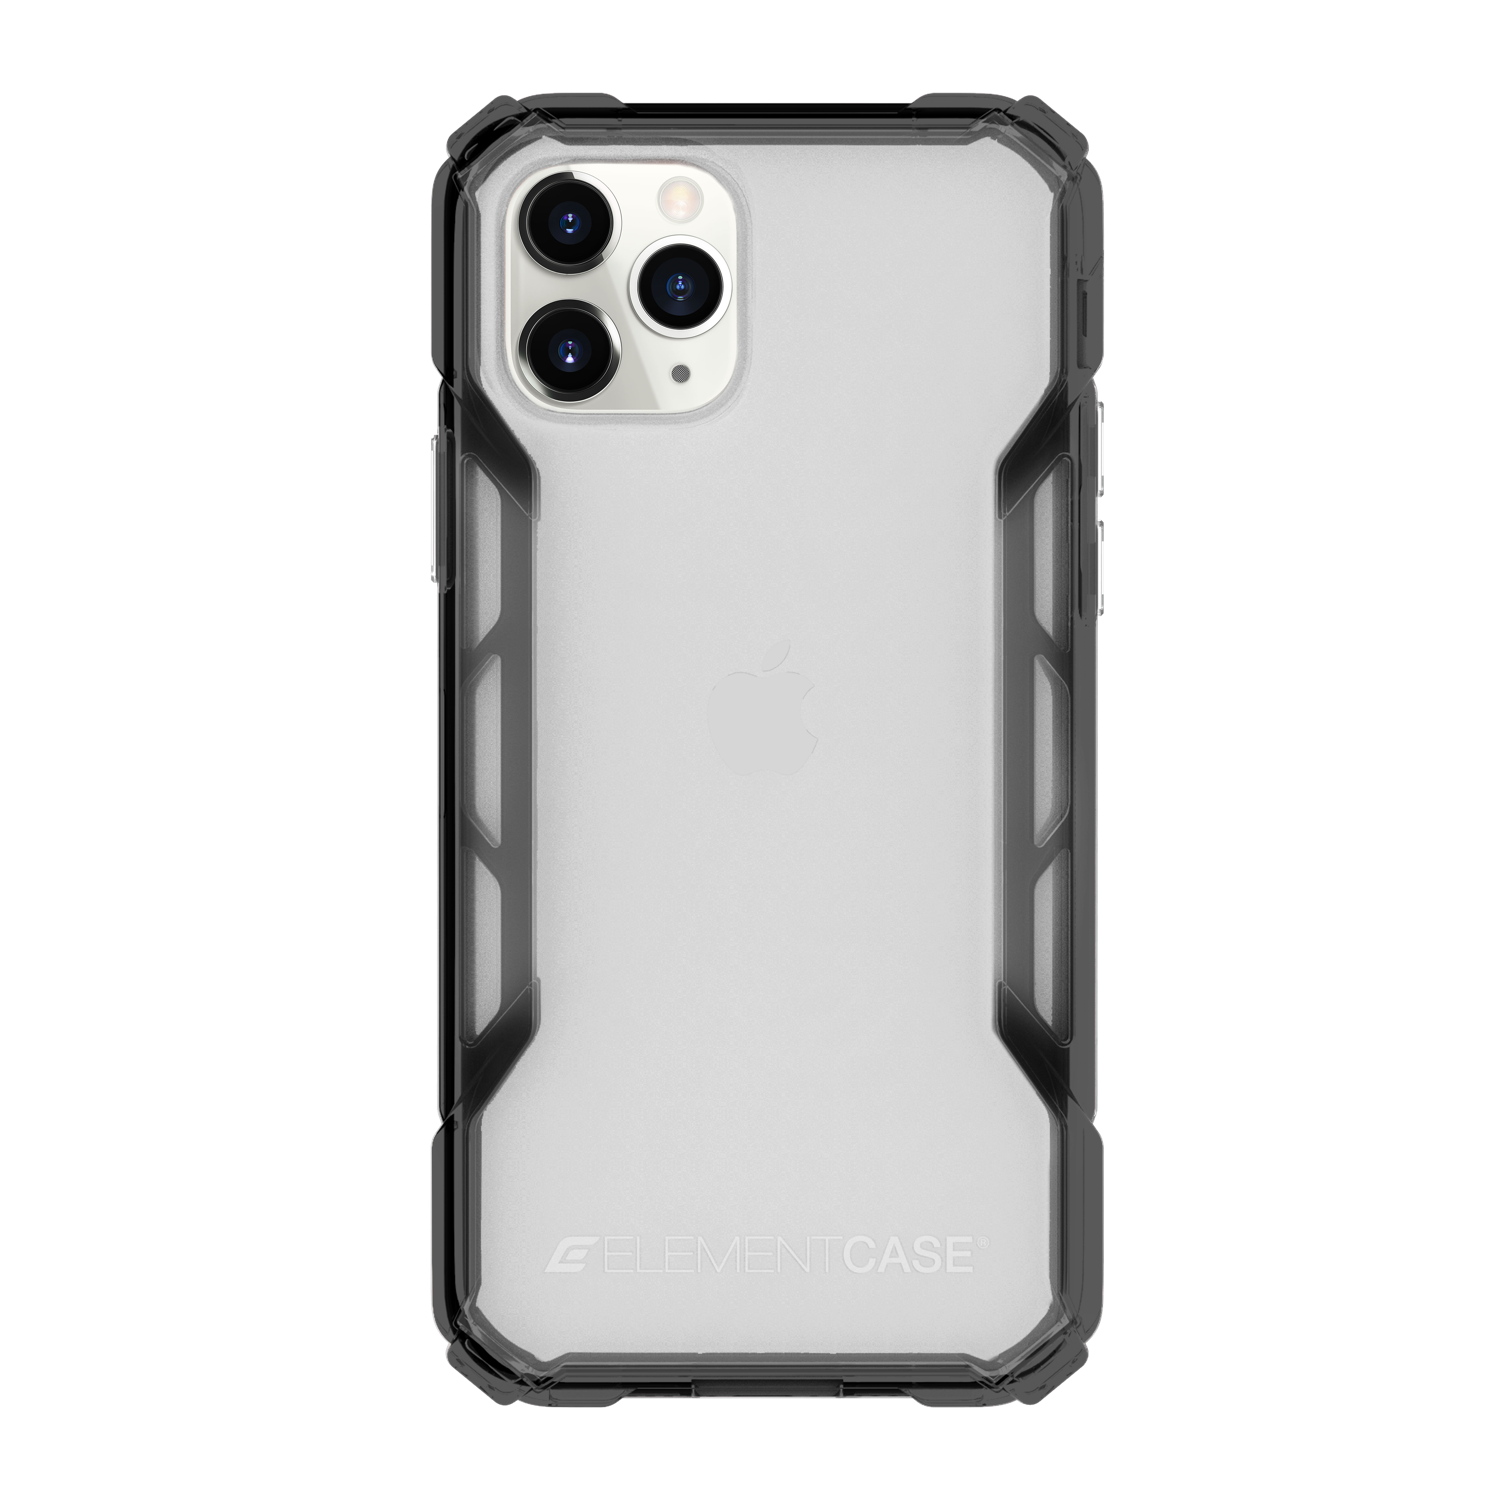 Element Case Rally Series Cover for iPhone 11 Pro Max